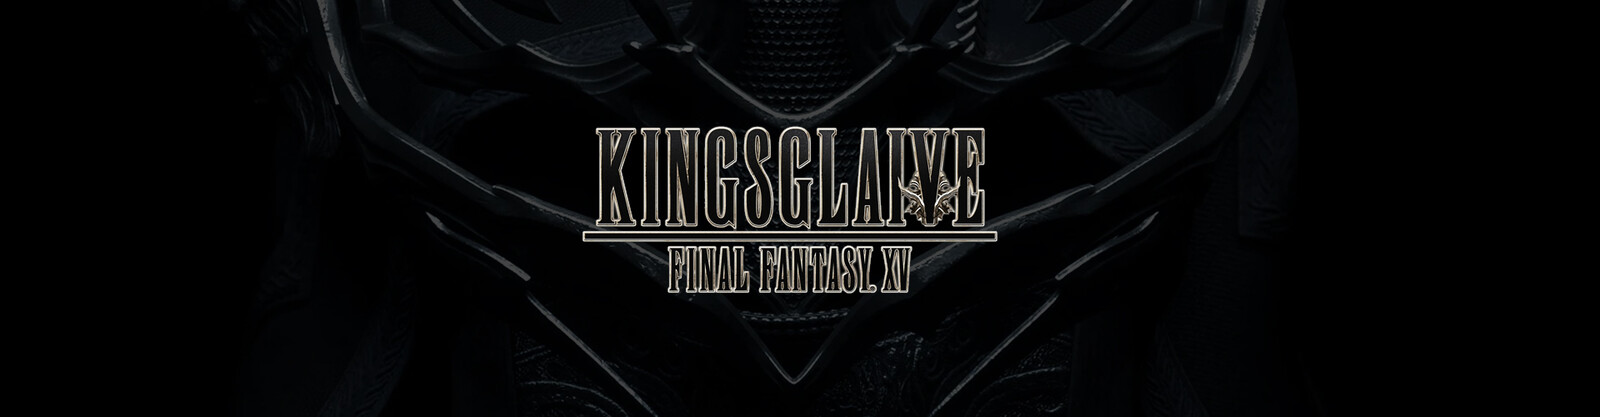 Kingsglaive - Final Fantasy XV.